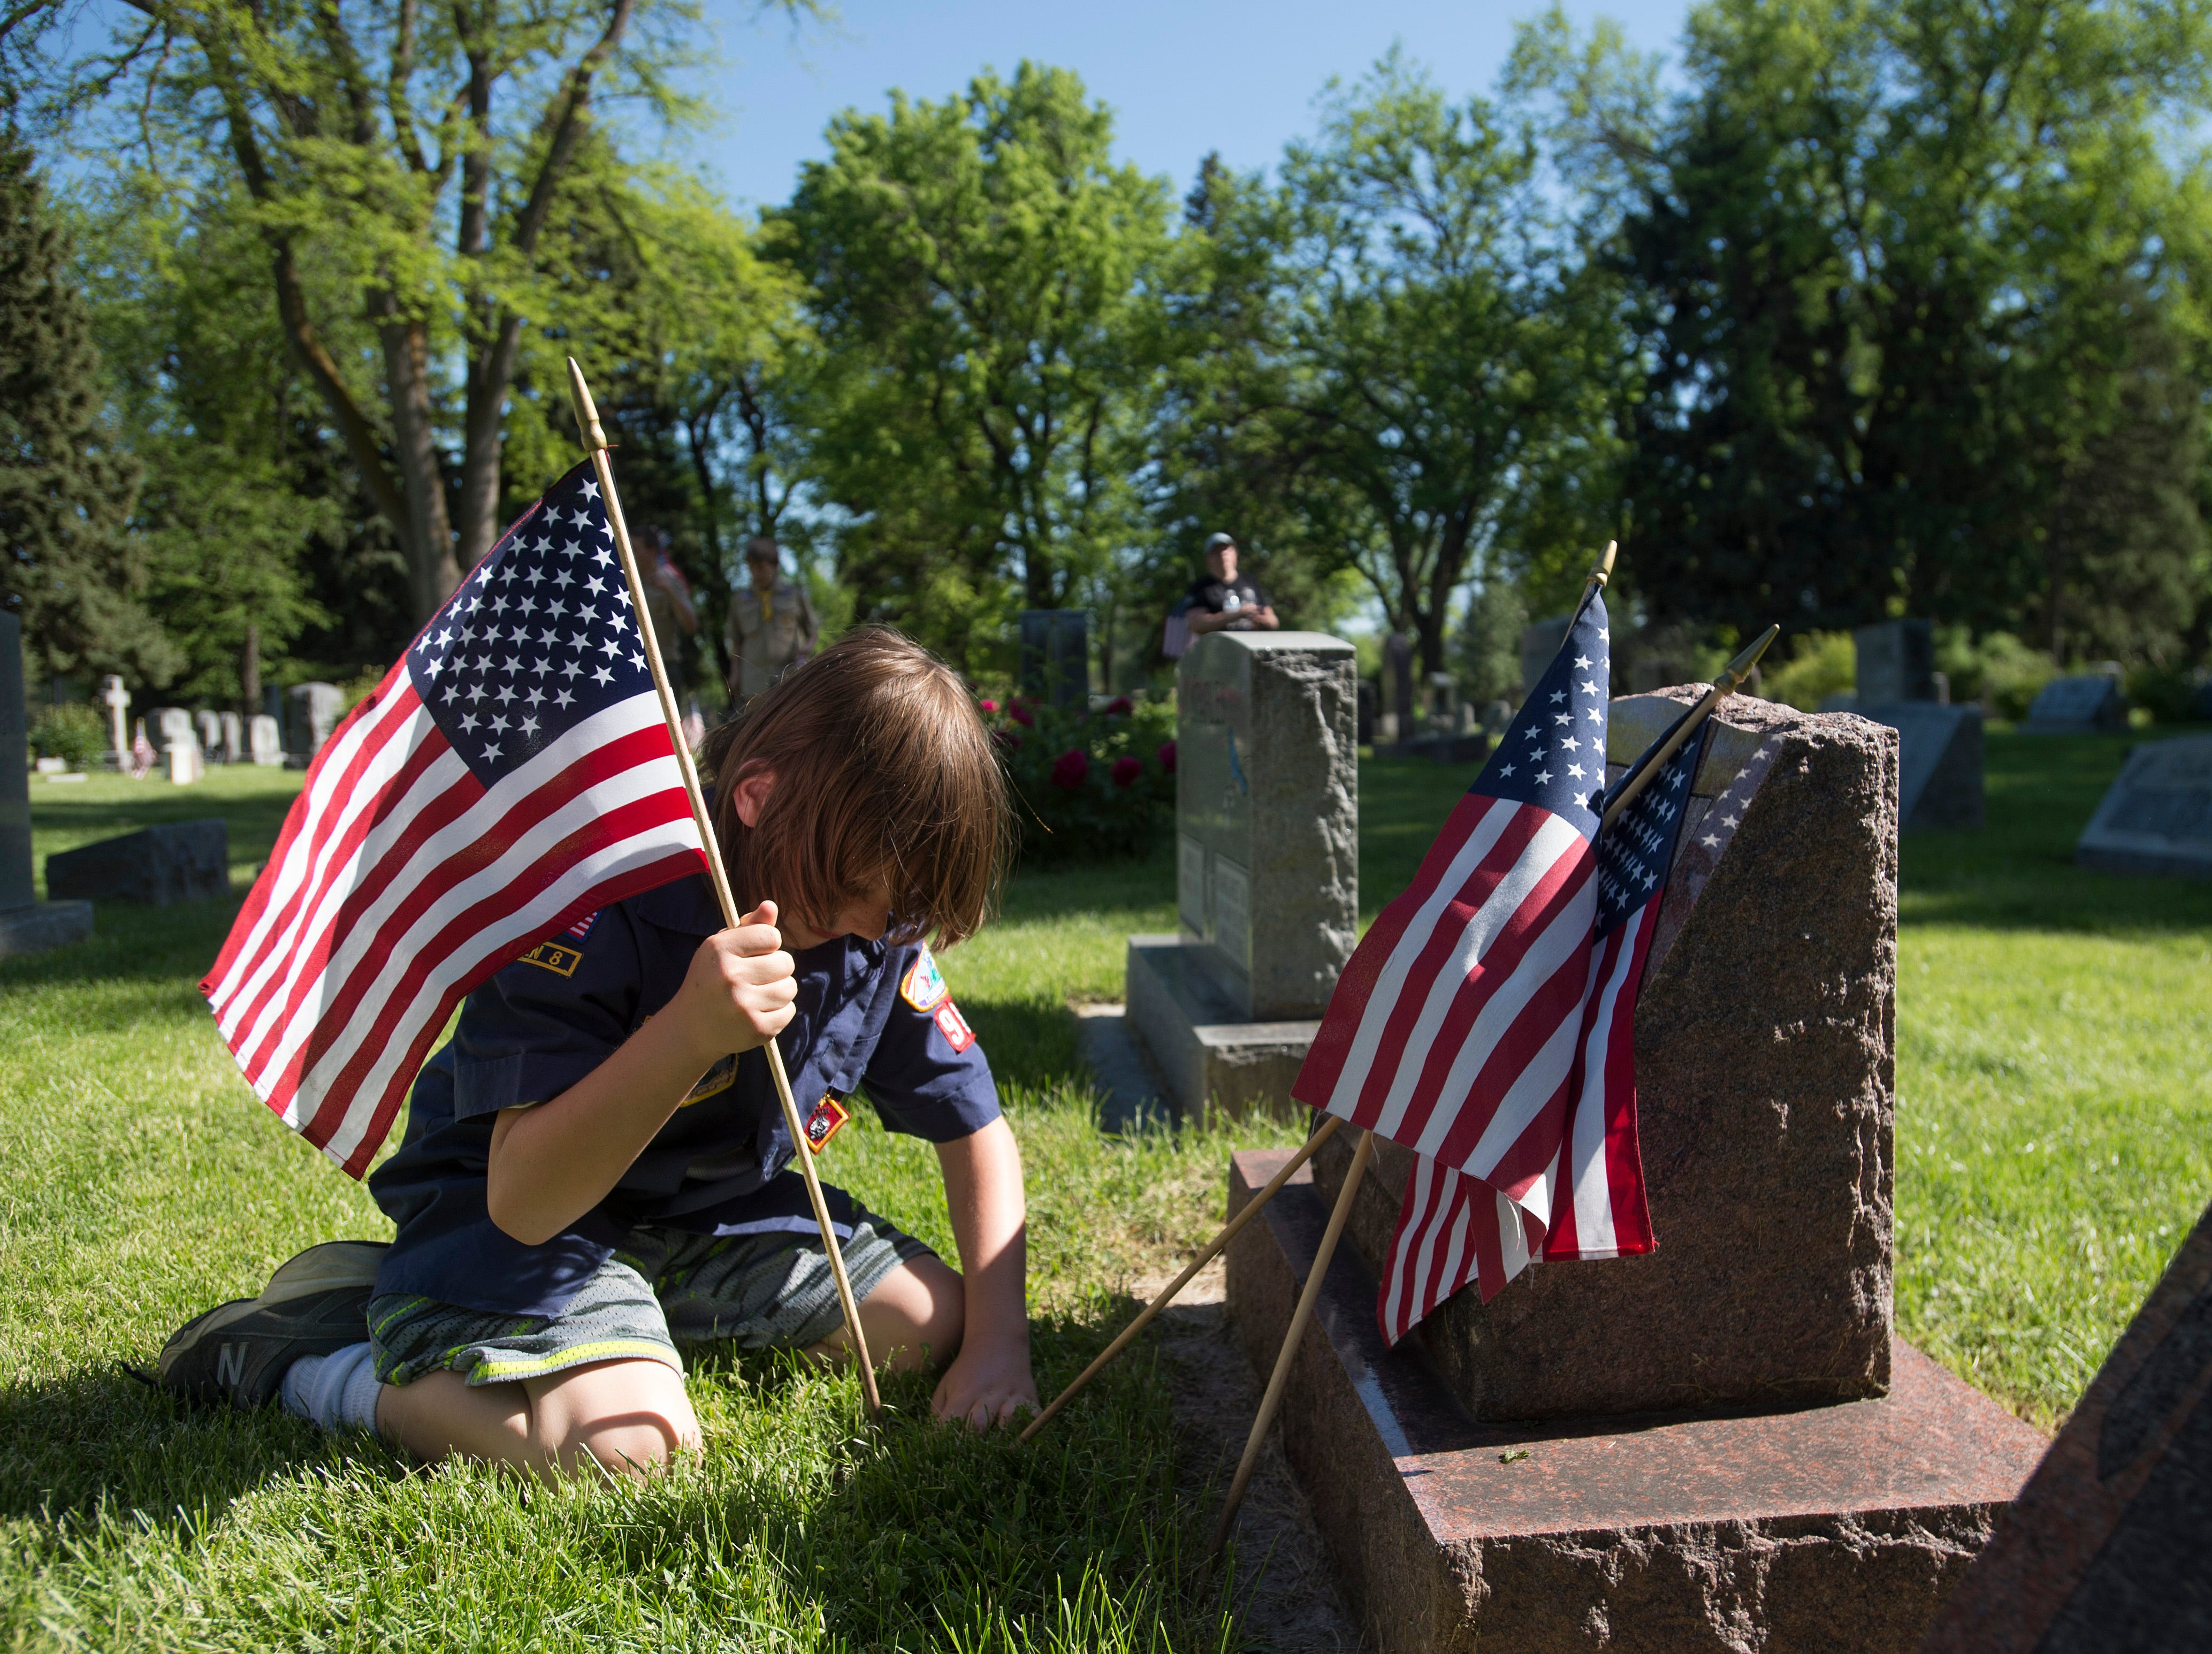 Matthew Young of Fort Collins' Pack 98 drives a United States Flag into the ground in front of a veteran's headstone at Grandview Cemetery at on Wednesday, May 23, 2018. Cub Scouts and Boy Scouts have been placing thousands of flags to honor veterans in the cemetery for around 40 years.